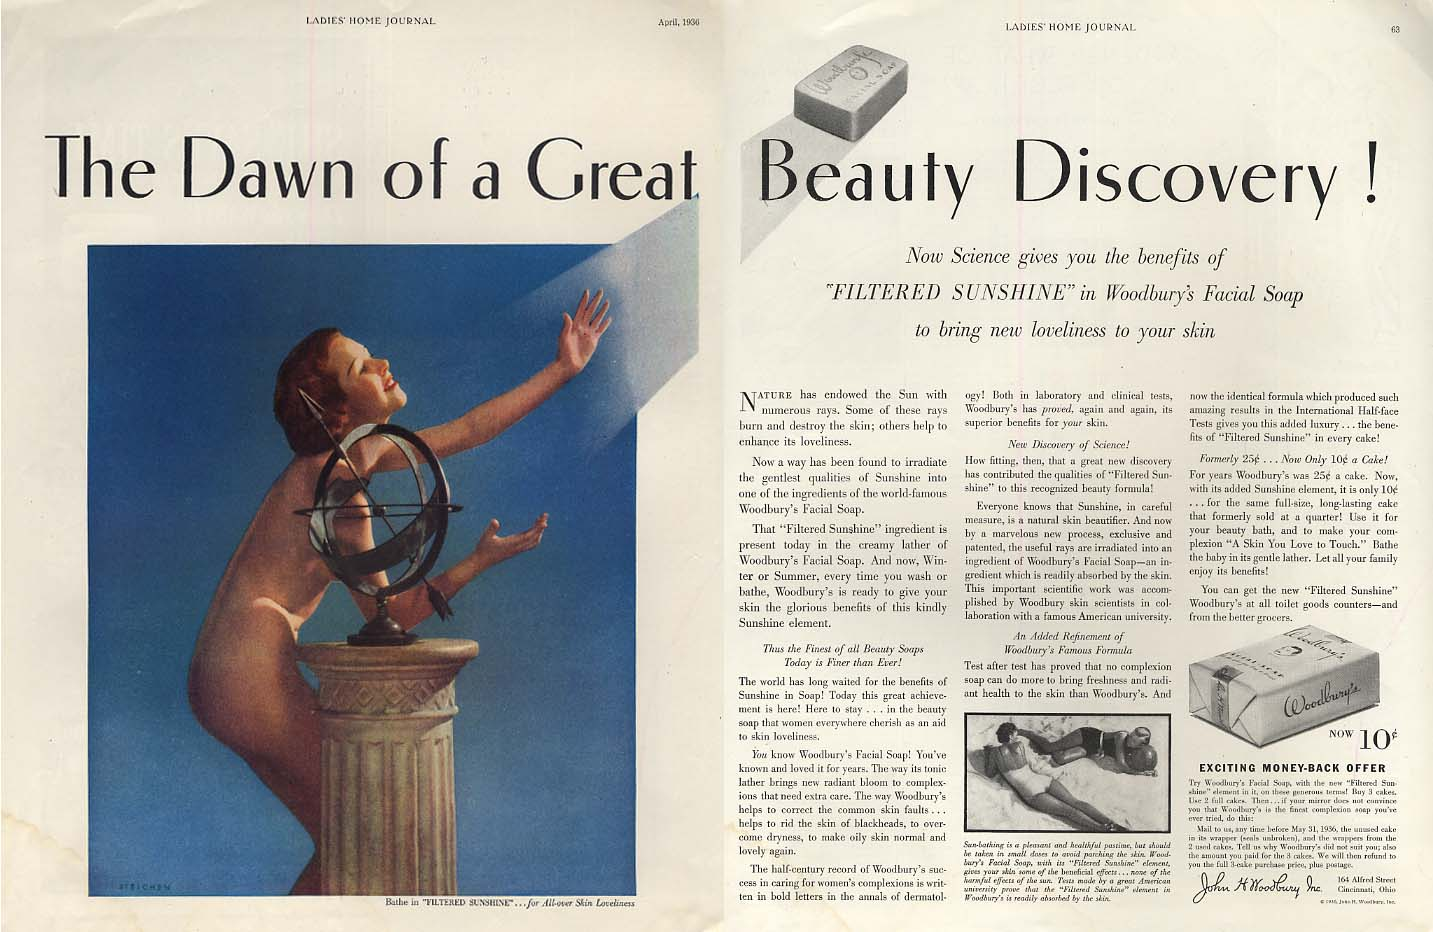 The Dawn of a Great Beauty Discovery! Woodbury Soap ad 1936 Edward Steichen nude